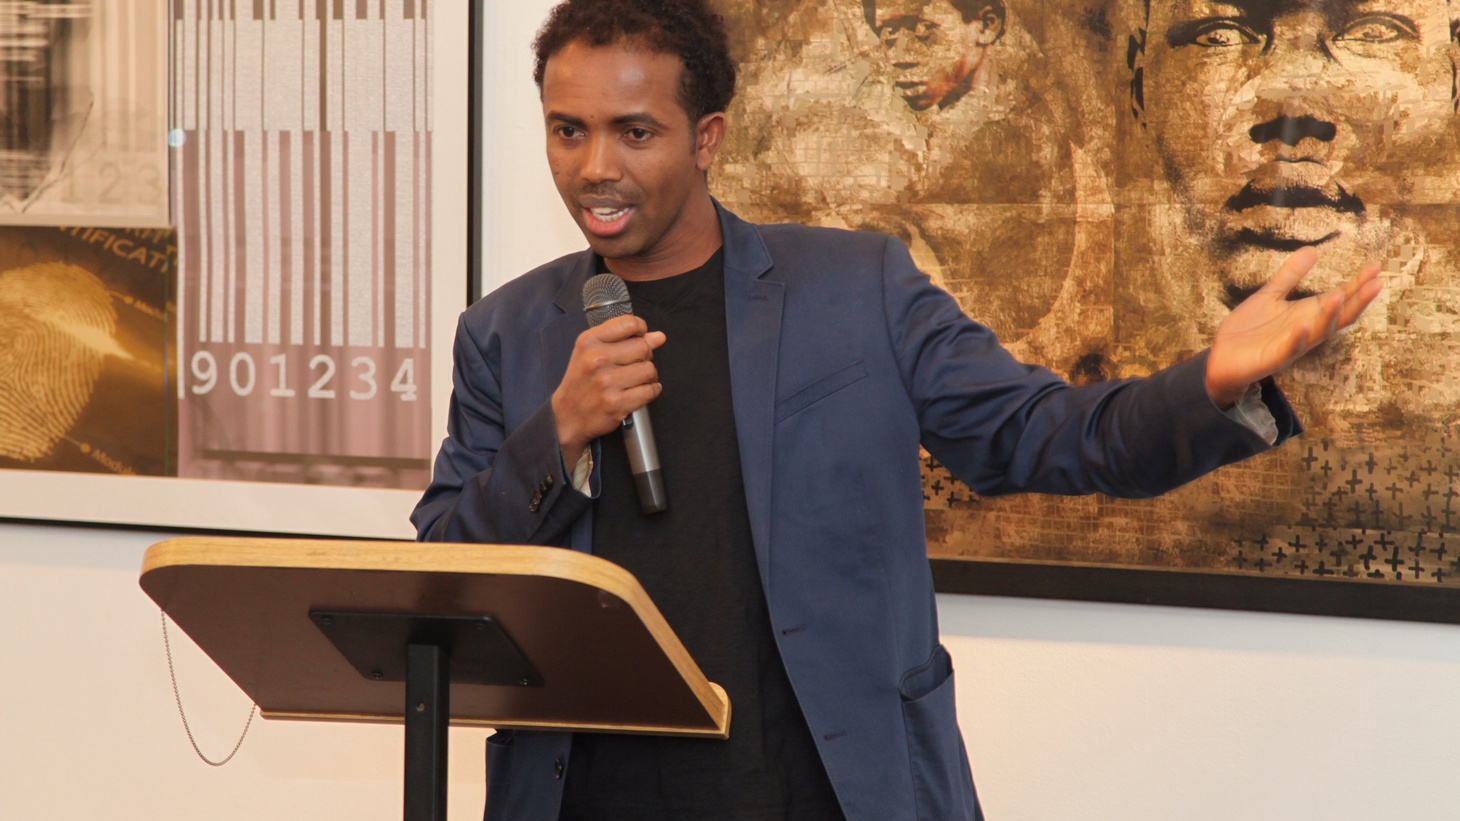 The Somali-born American writer discusses his early life in the war-torn country and becoming an American.